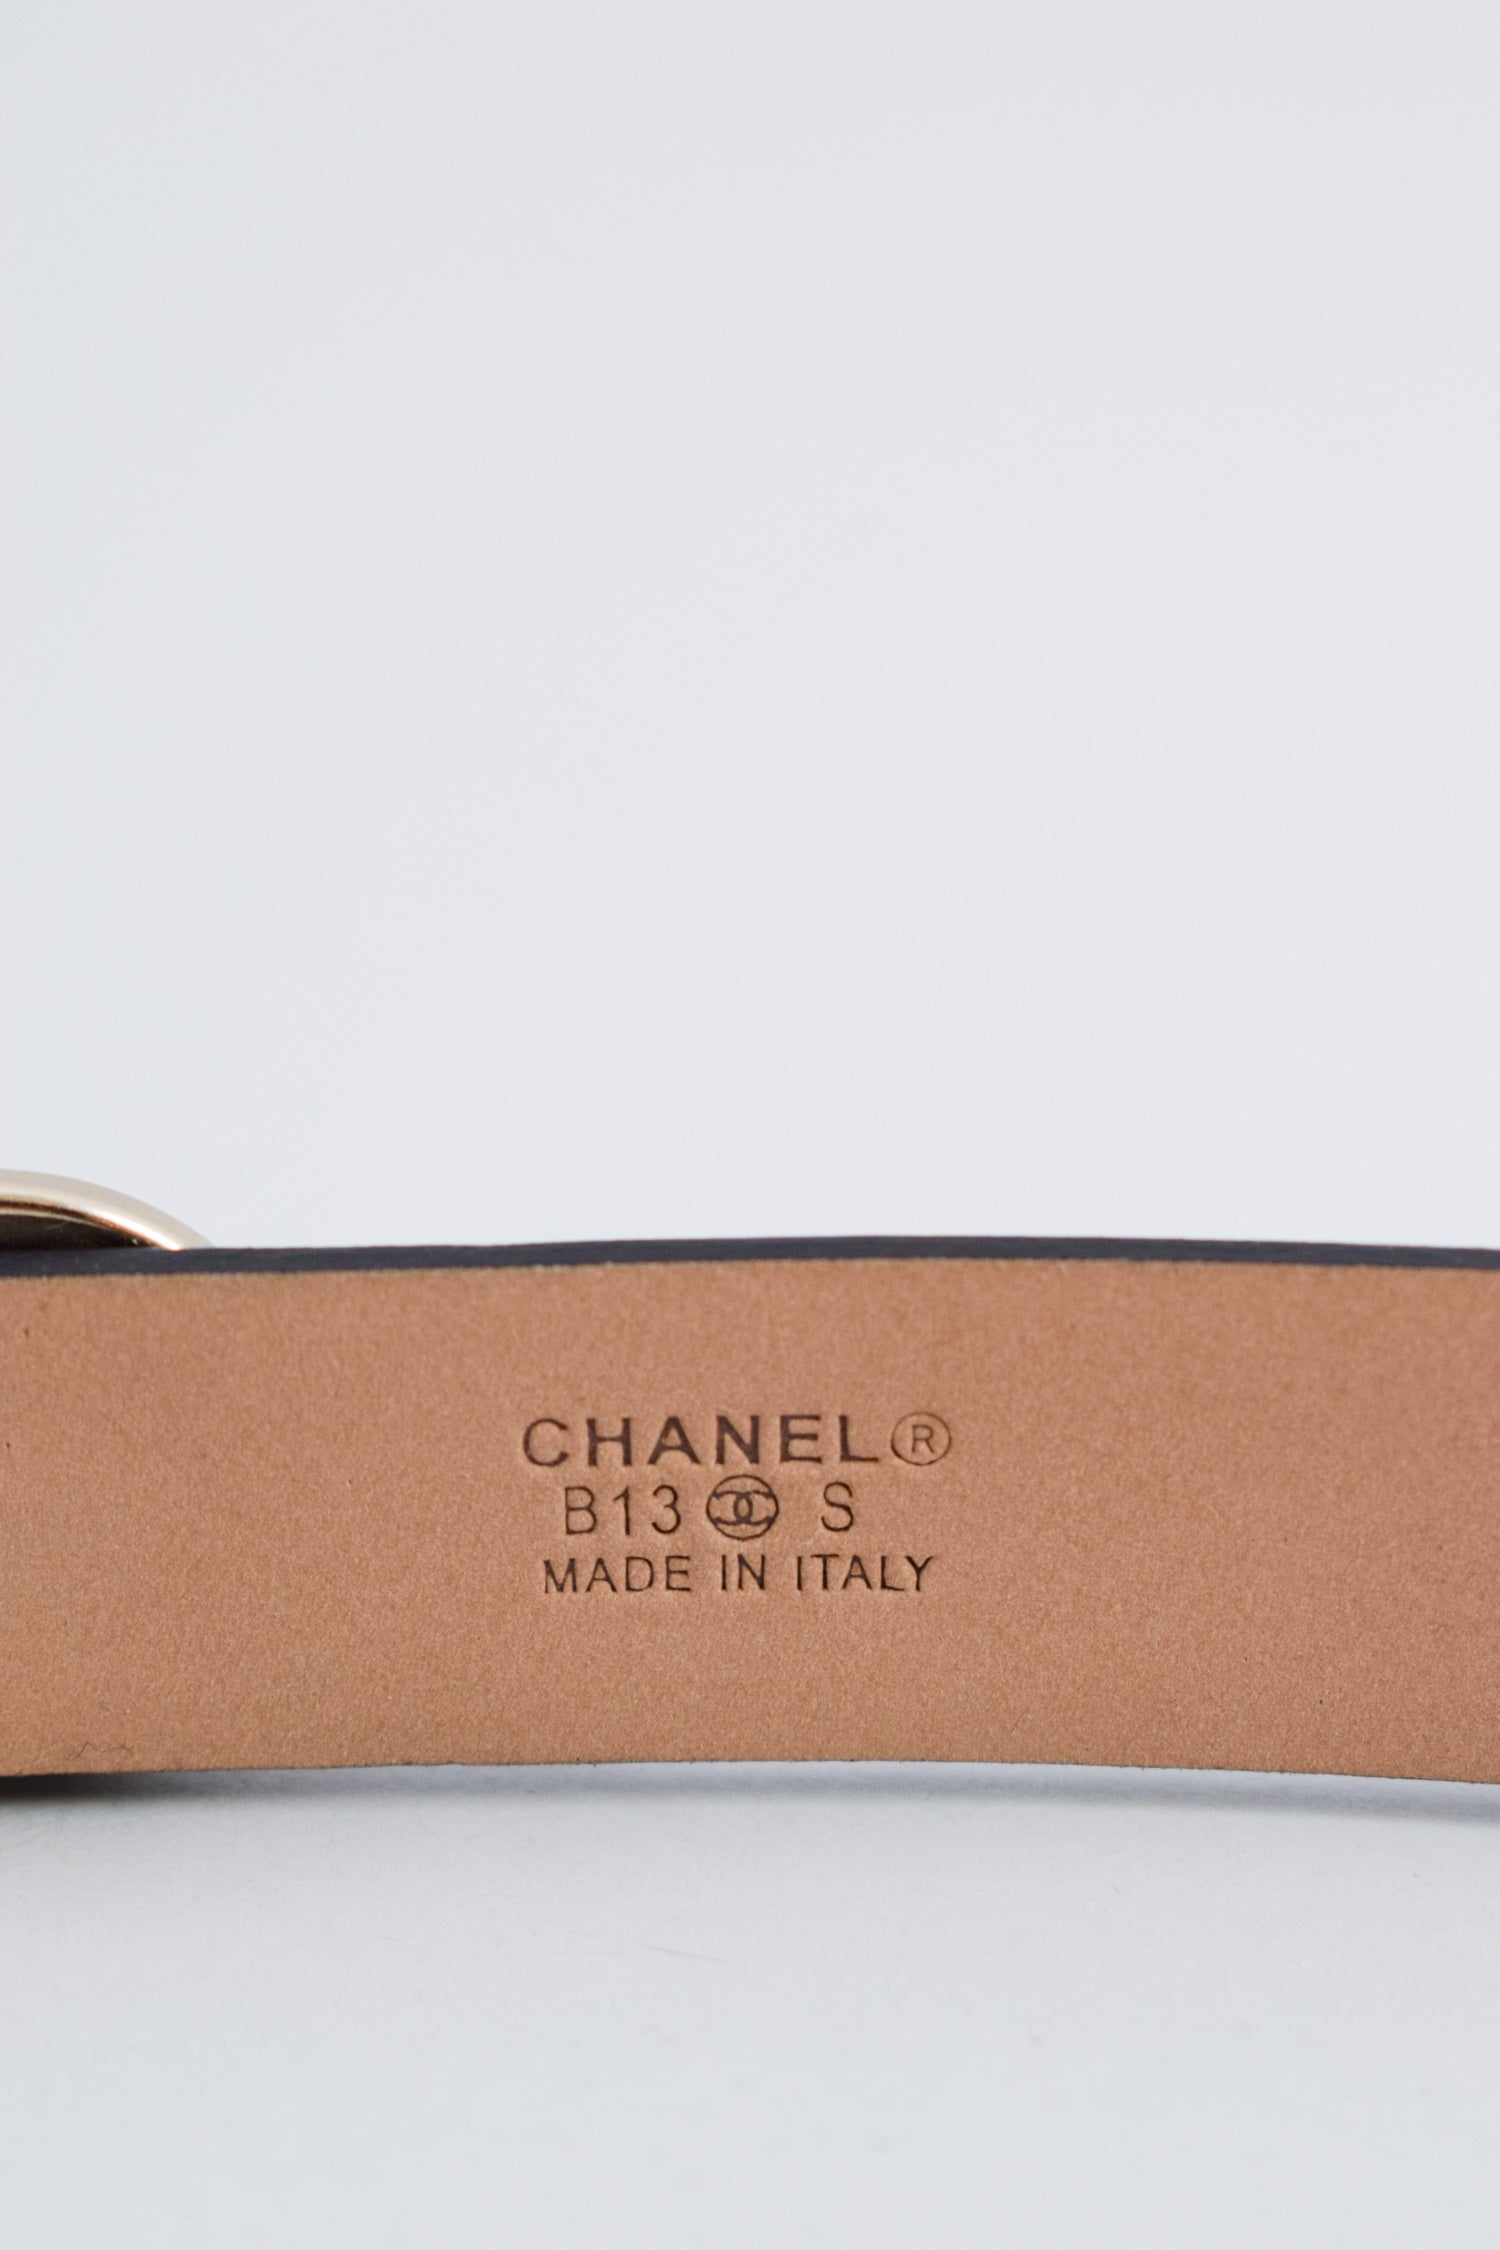 Chanel Black Leather Pearl Belt Size 80